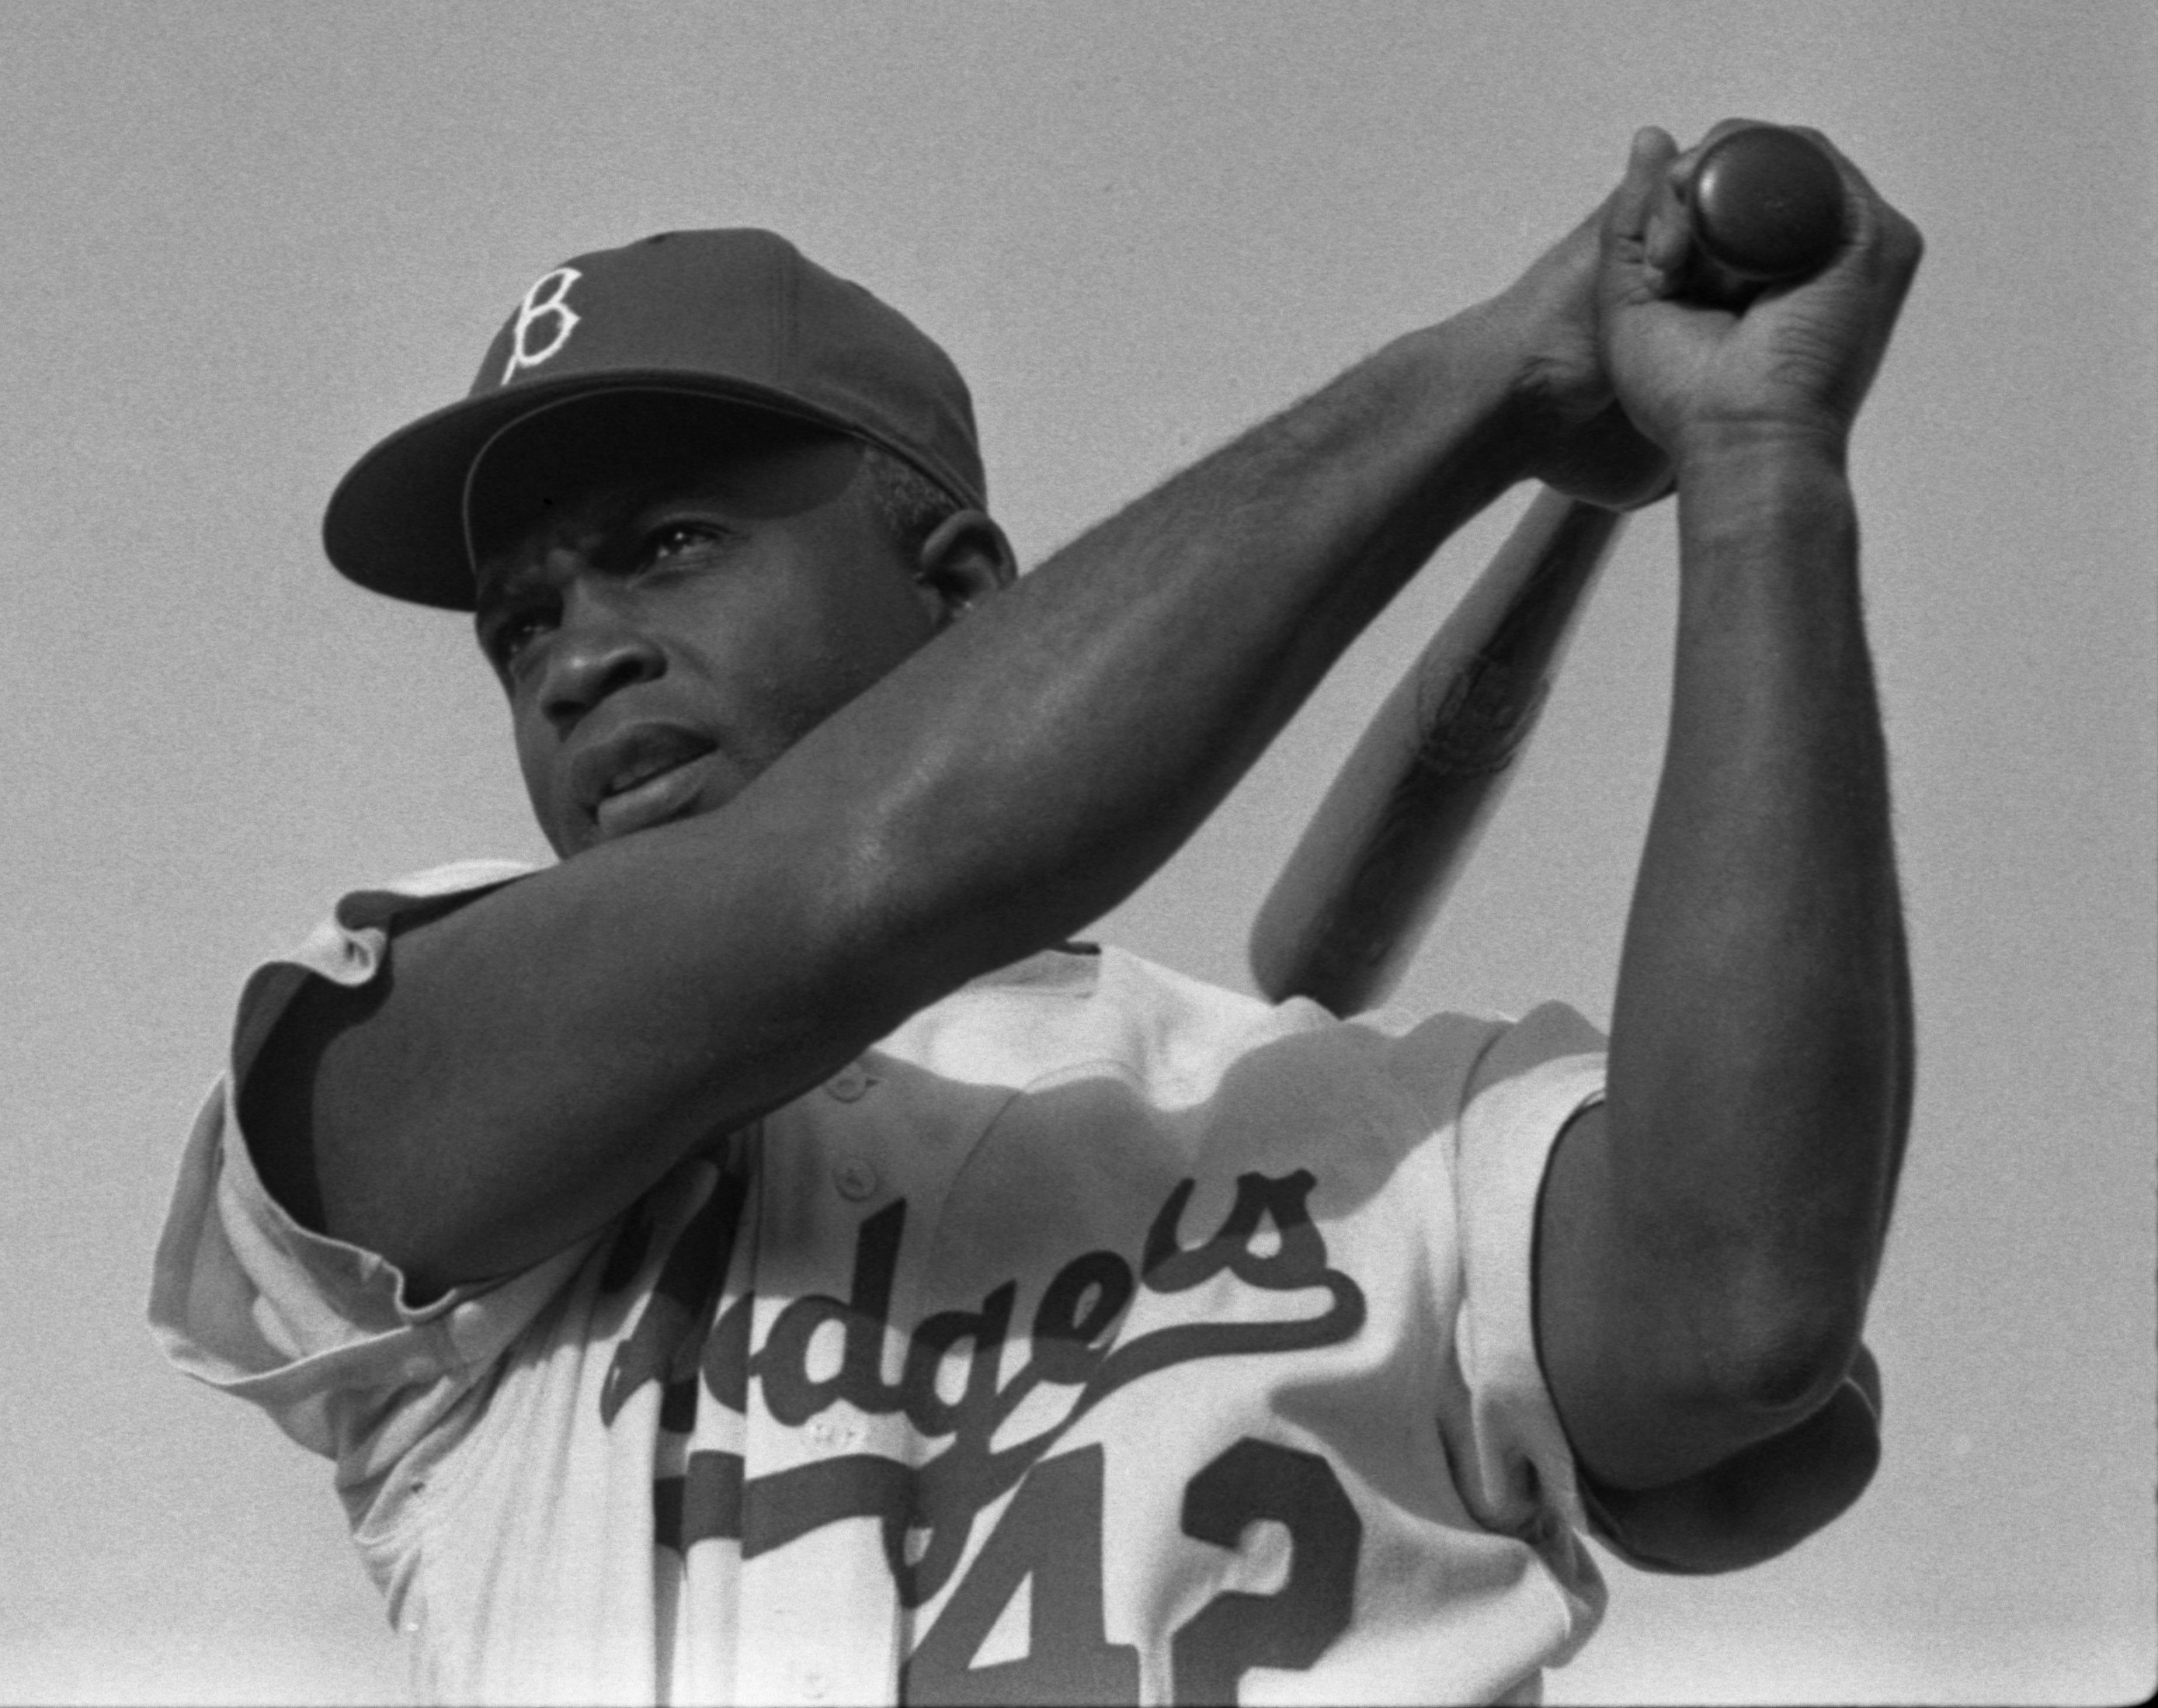 Jackie Robinson swinging a bat in Dodgers uniform, 1954. Photo by Bob Sandberg. Published in LOOK, v. 19, no. 4, 1955 Feb. 22, p. 78.